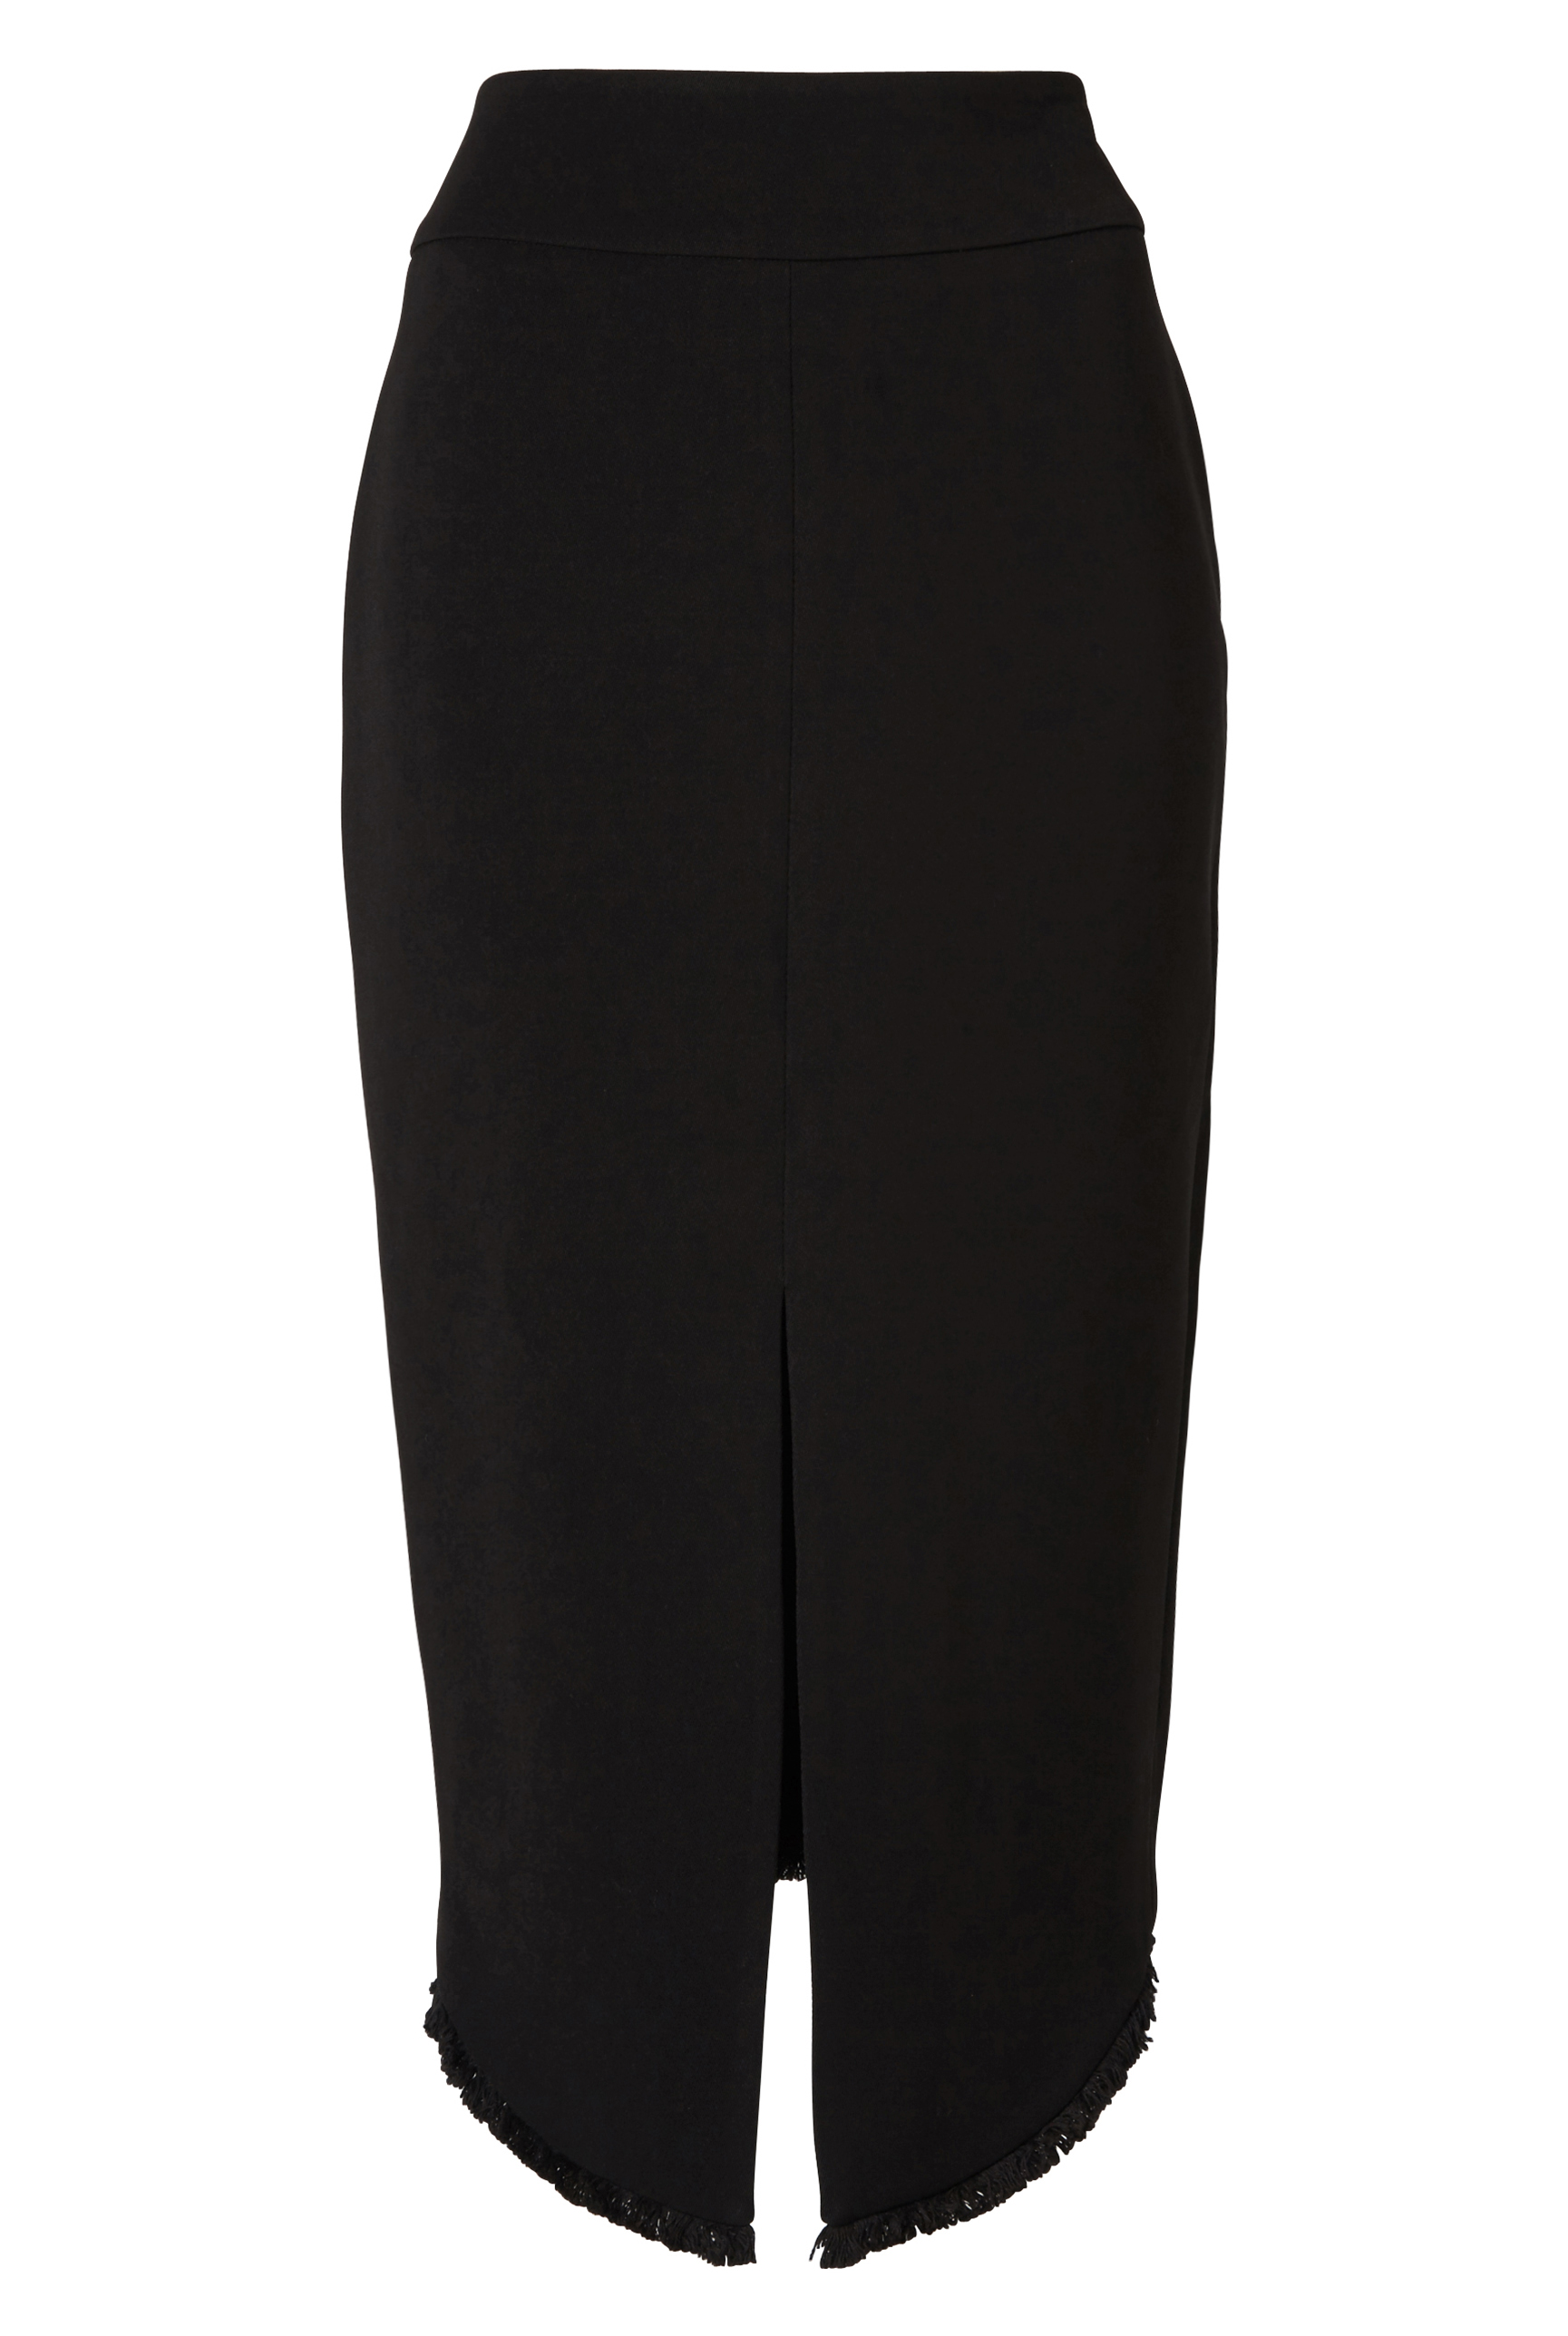 60190085_Witchery First Edtion Neni Pencil Skirt, RRP$199.90